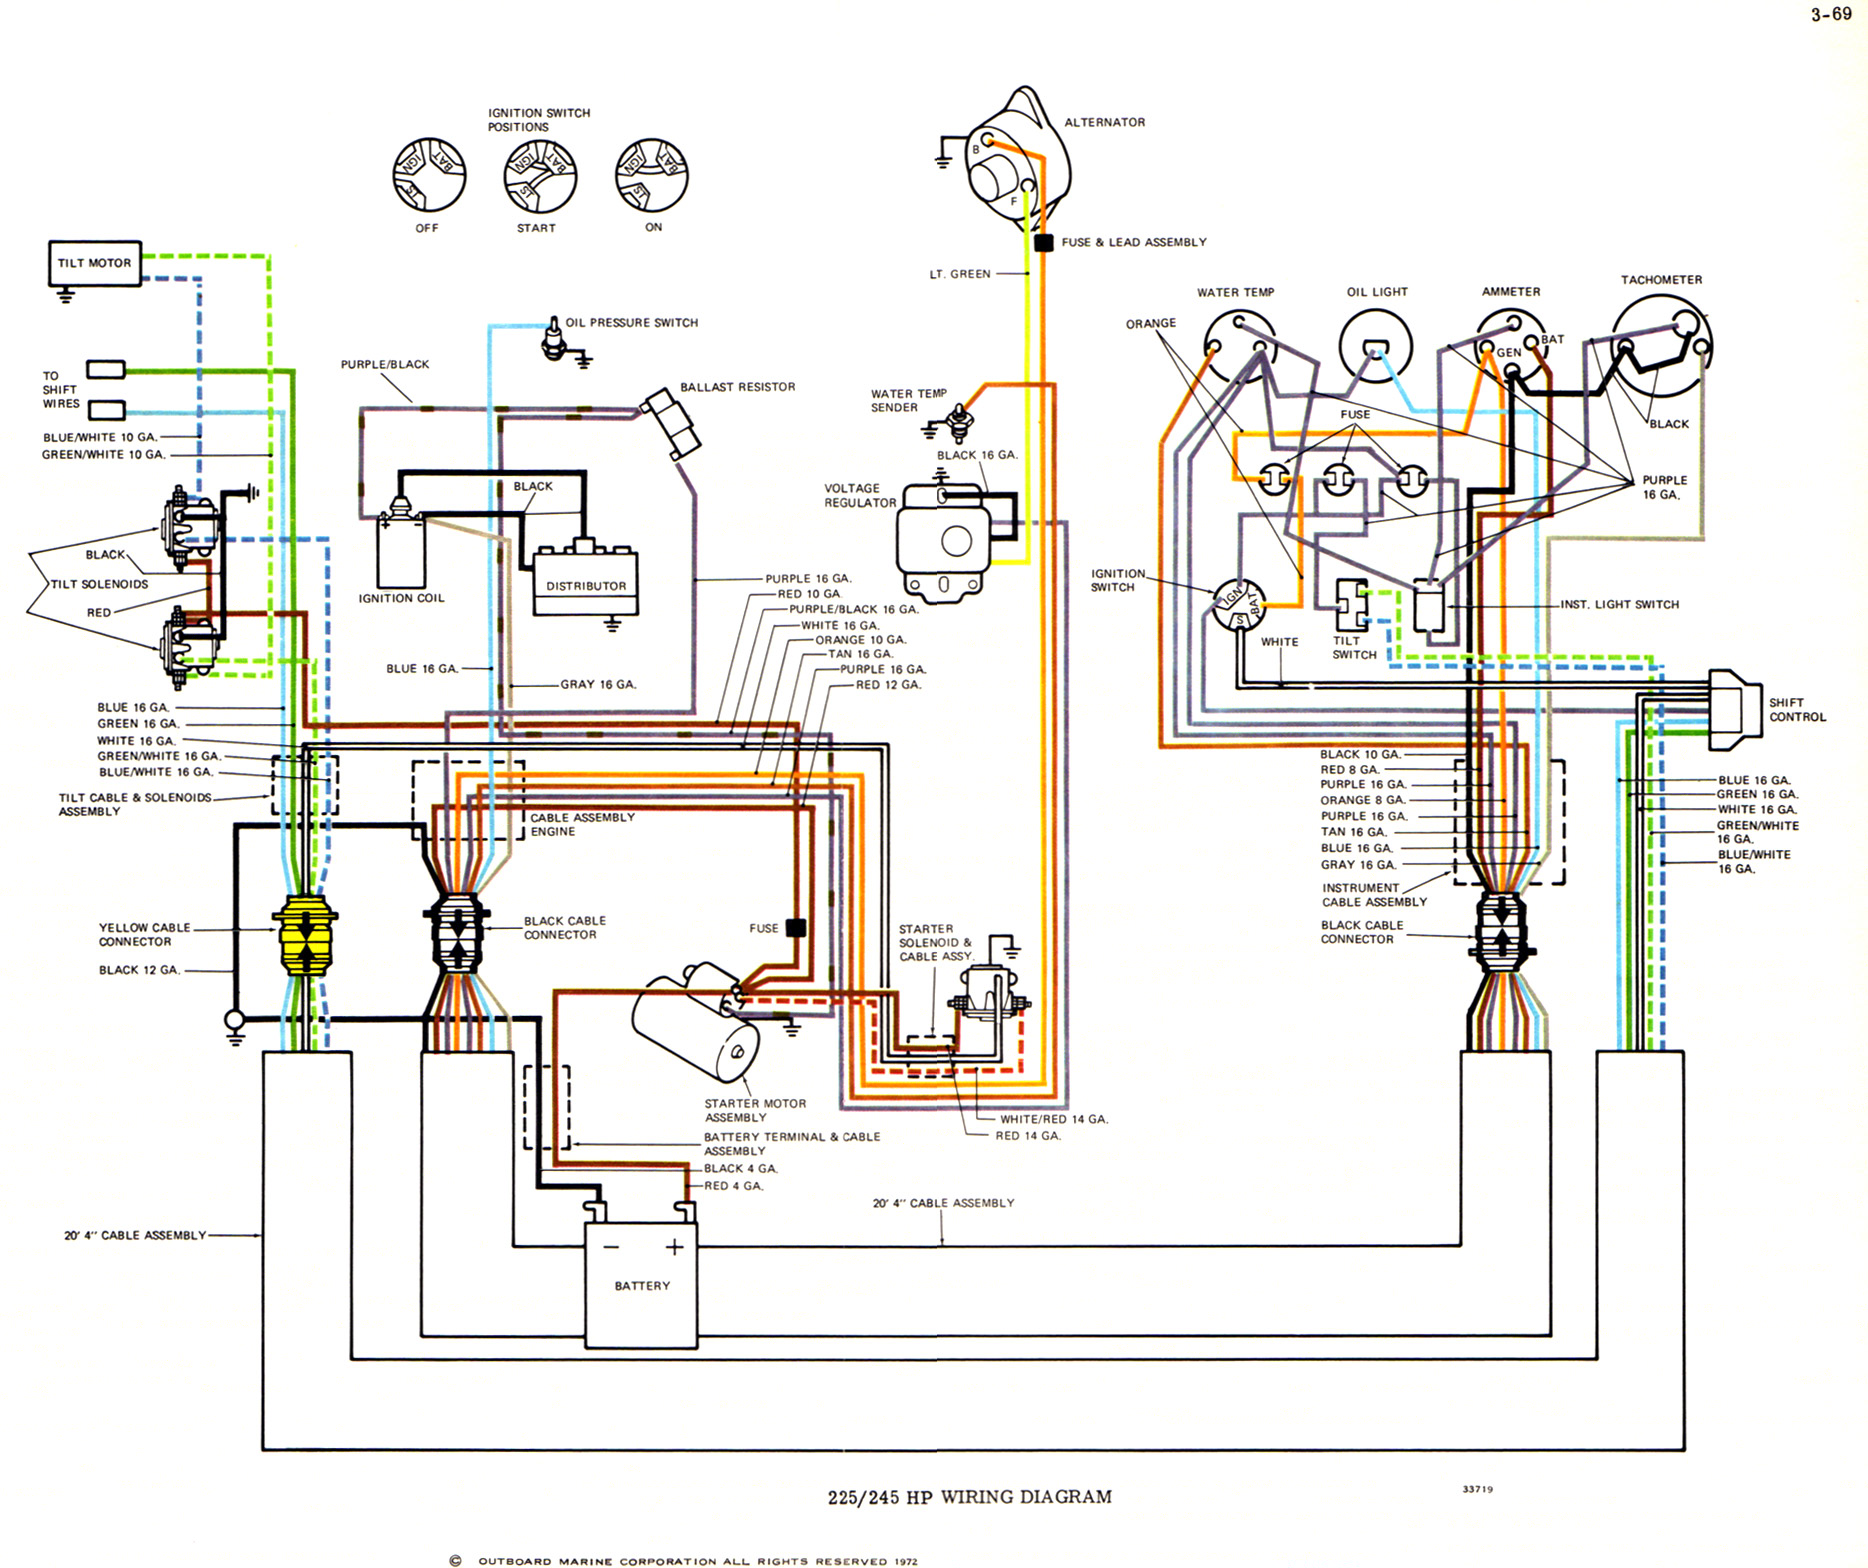 Omc Tach Gauge Wiring Diagram on